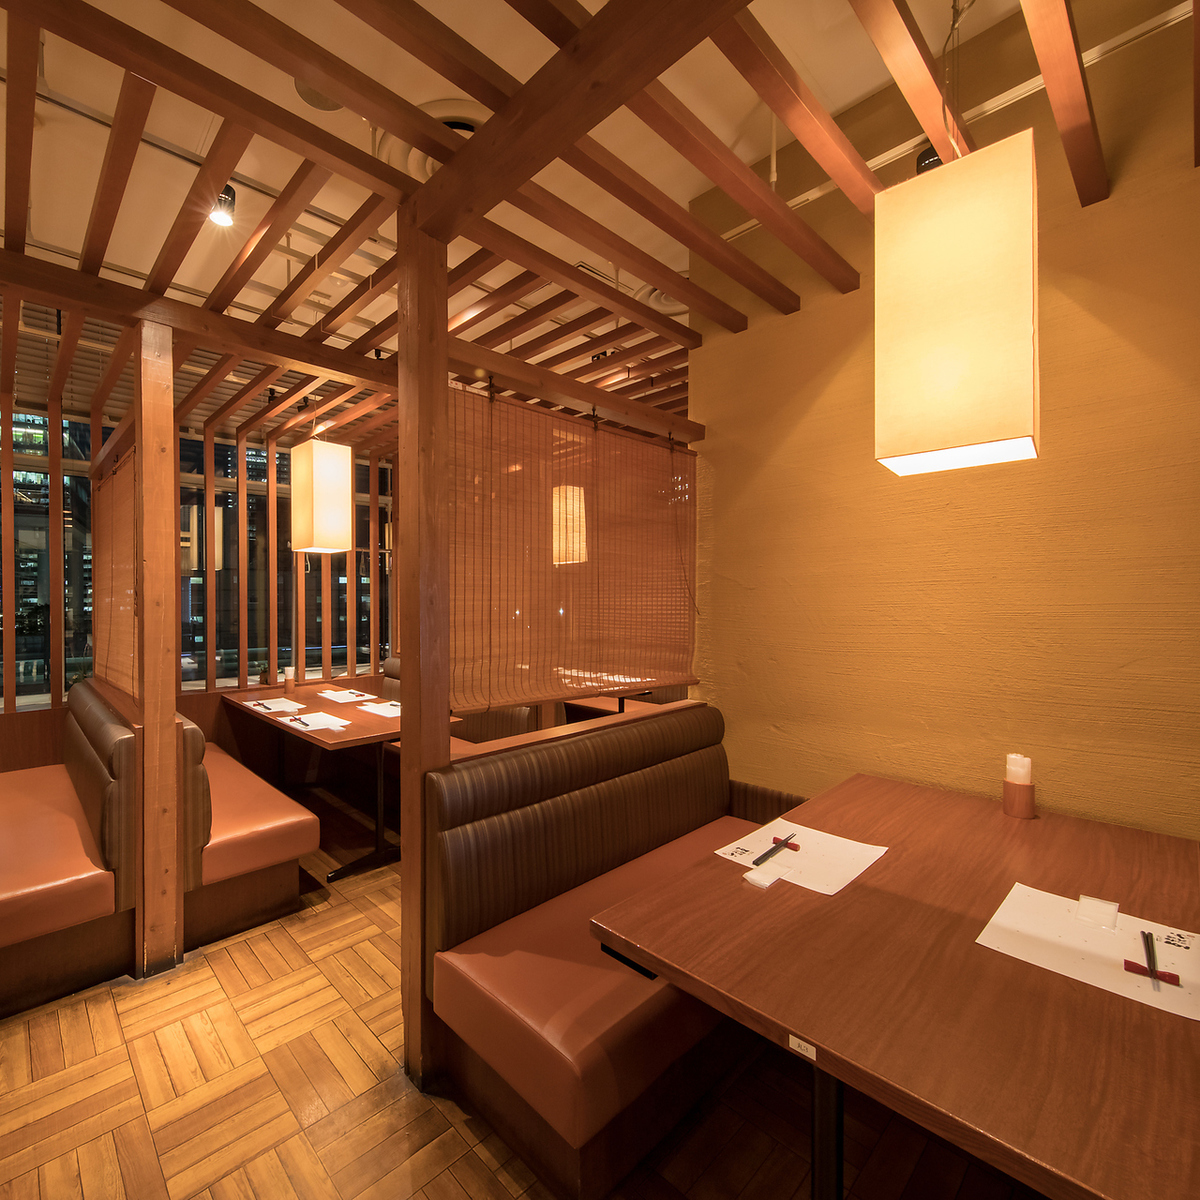 It is a semi-private type BOX seat which is perfect for the girls' party and the daytime party, but at night it changes the atmosphere and makes the mood even more ♪ The interior and landscape, clean and open, with the specialty of attention Please enjoy the sake while relaxing comfortably ♪